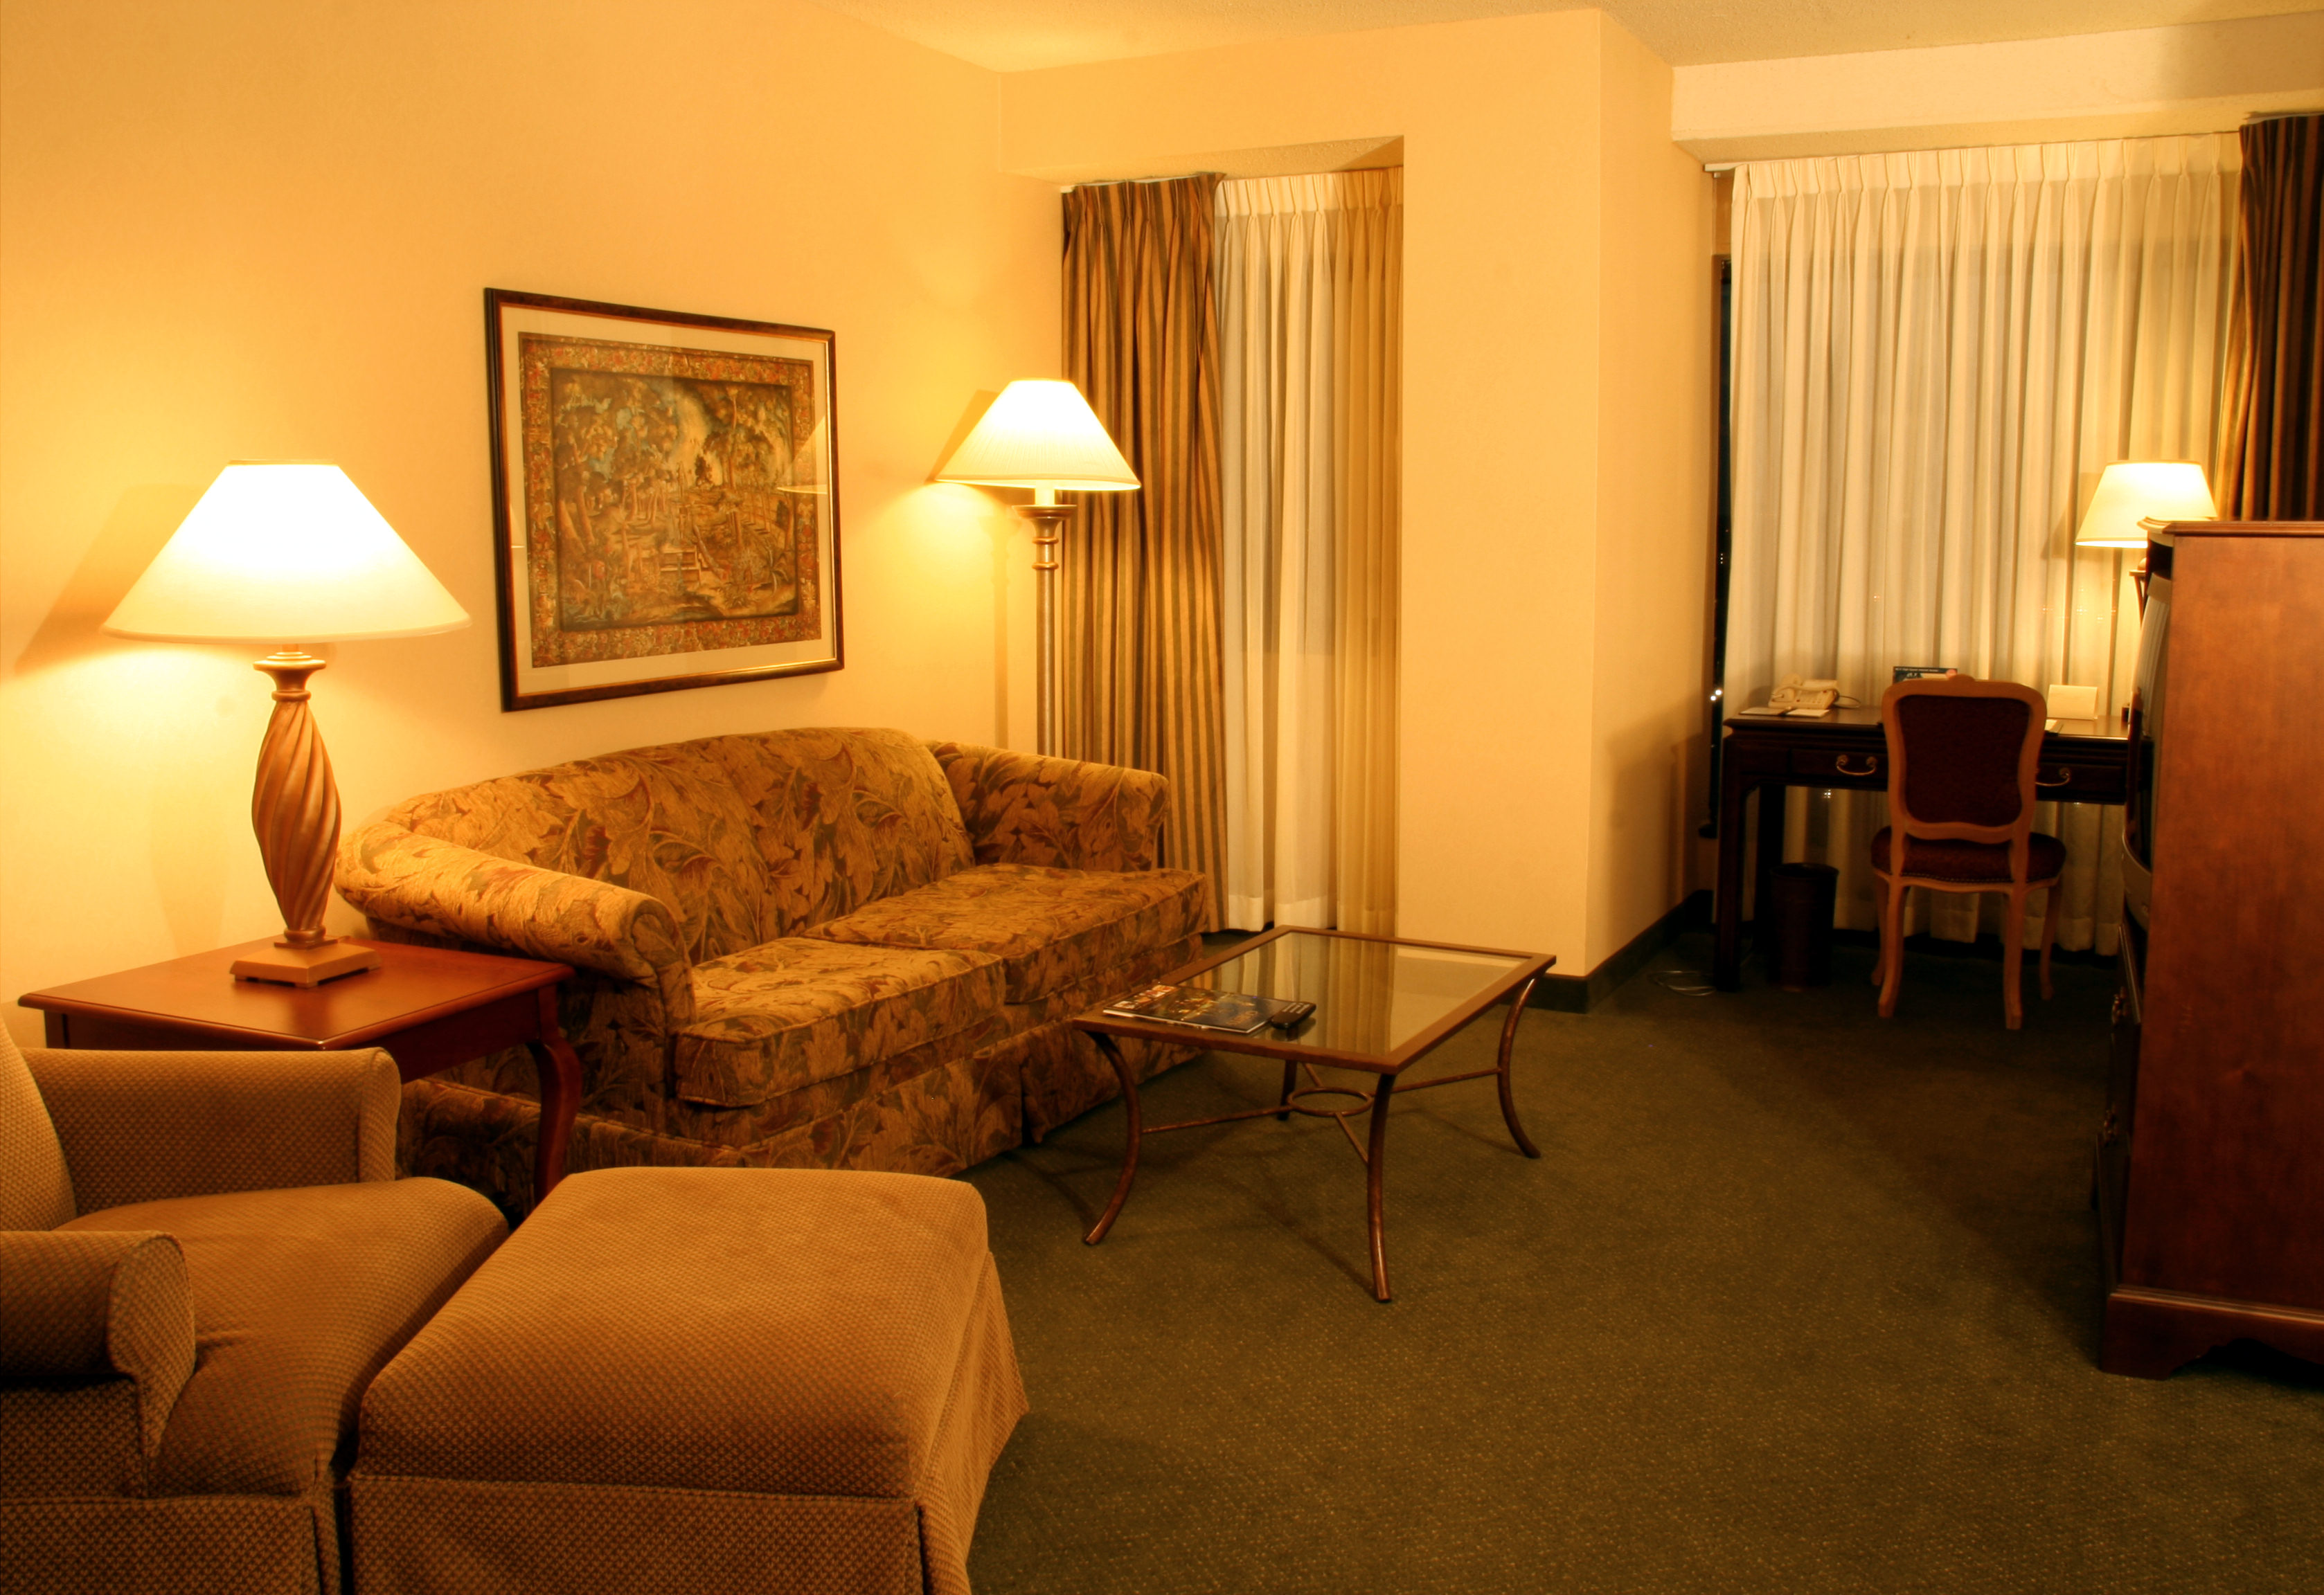 Remarkable Hotel Suite Living Room 3356 x 2304 · 1029 kB · jpeg